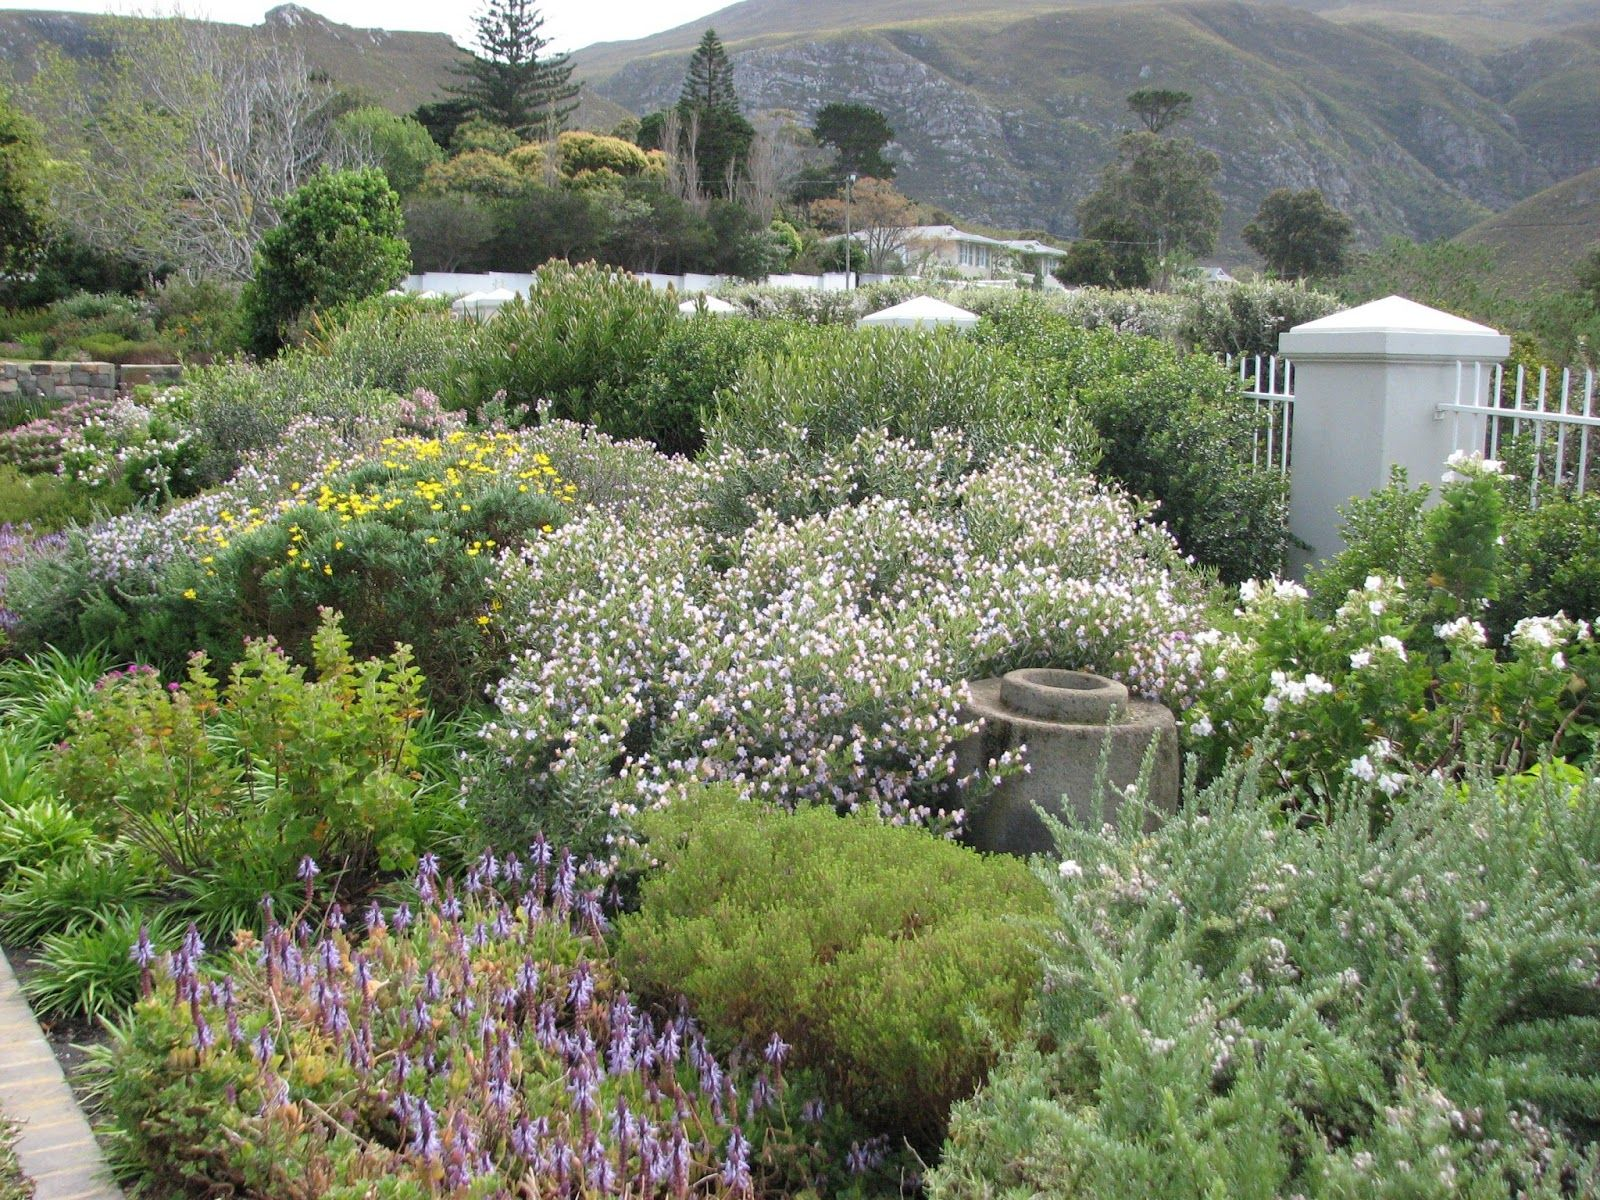 Waterwise Garden Design fynbos country cottage garden style | planting textures